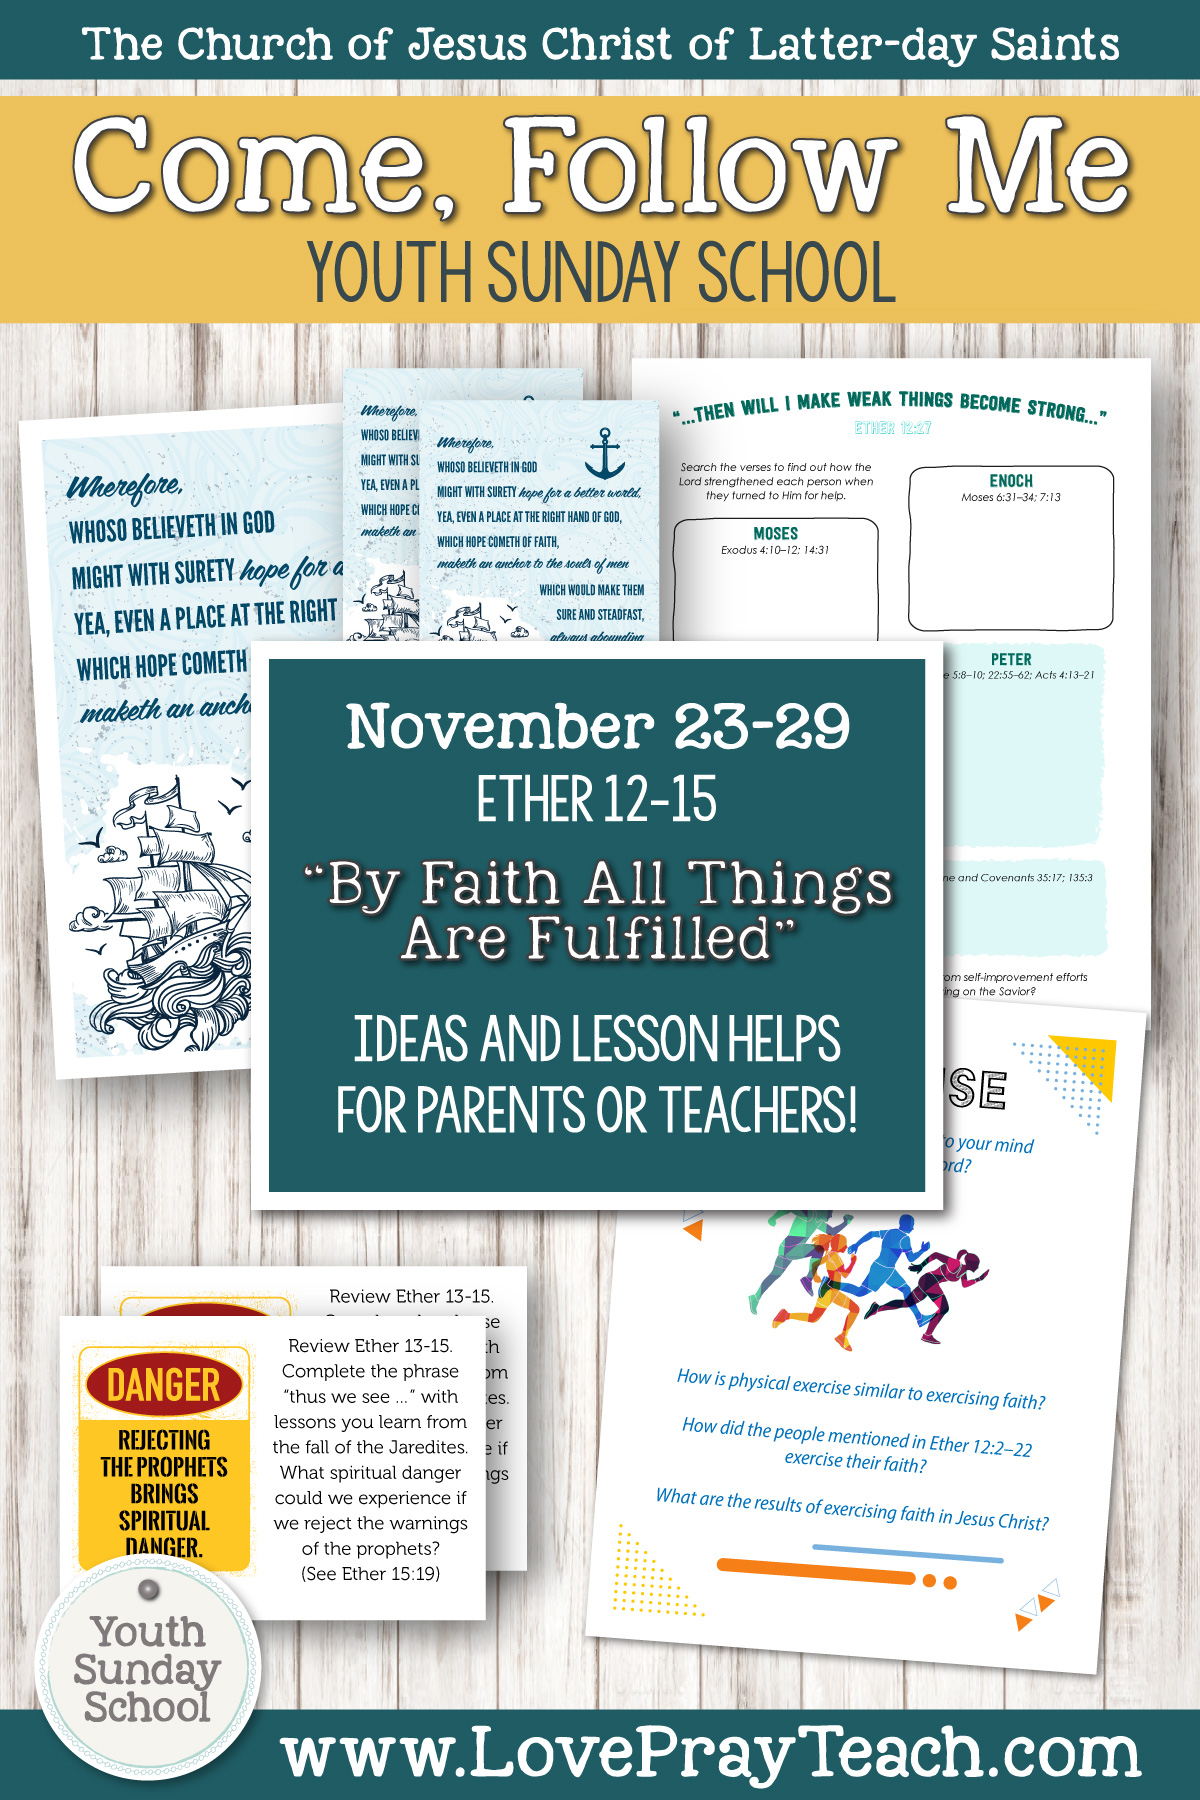 """Youth Sunday School Come, Follow Me Book of Mormon 2020 November 23–29 Ether 12–15 """"By Faith All Things Are Fulfilled"""" Printable Lesson Packet for Latter-day Saints for Parents AND Teachers"""